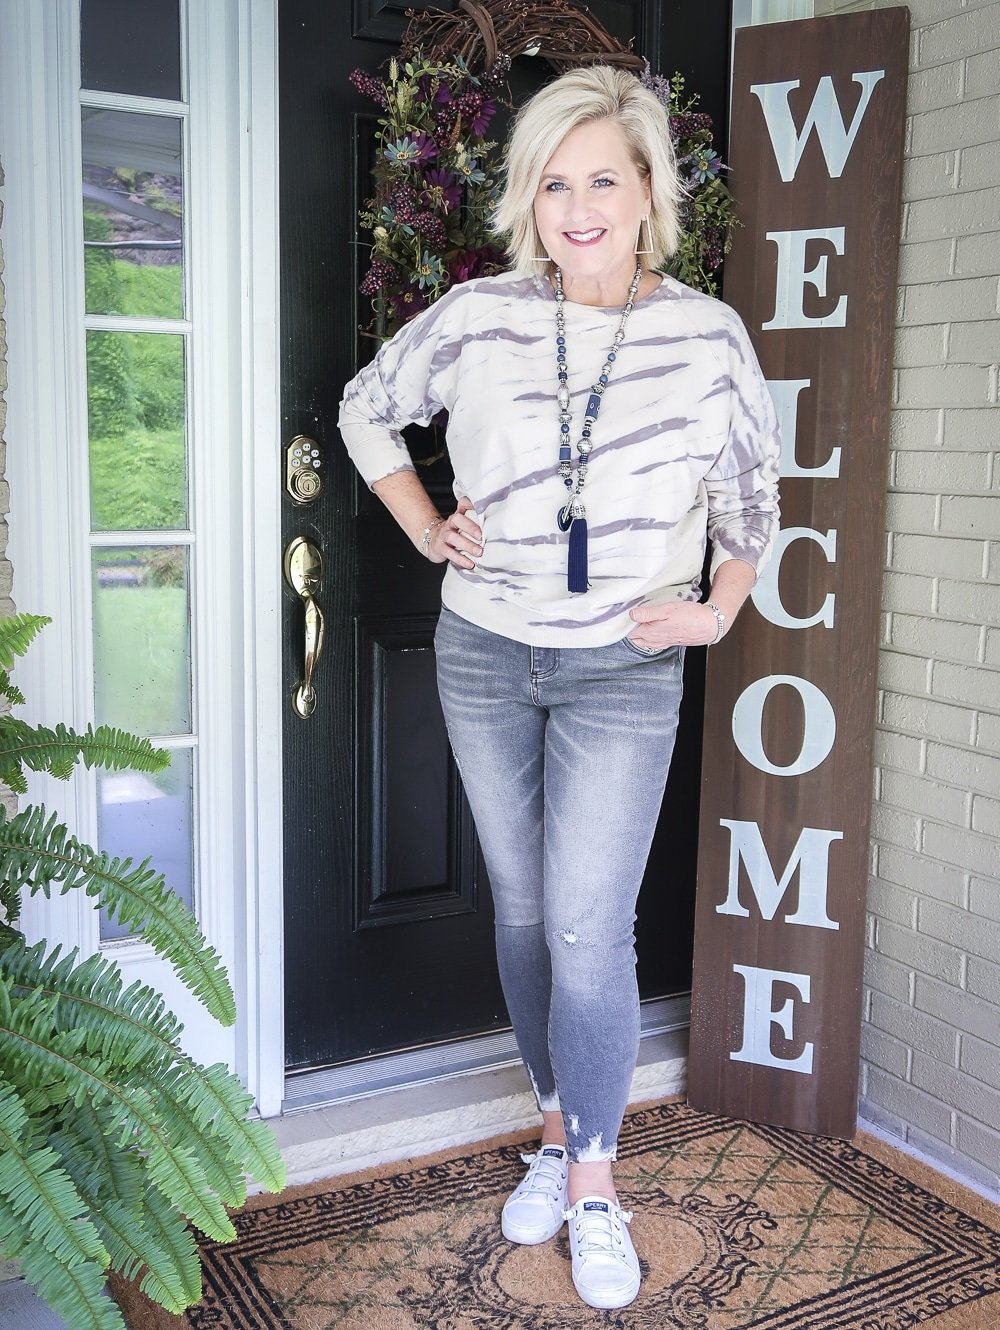 Fashion Blogger 50 Is Not Old is wearing a tie-dye sweatshirt with a pair of washed gray jeans from Kut From The Kloth with Sperry Crest Vibe sneakers